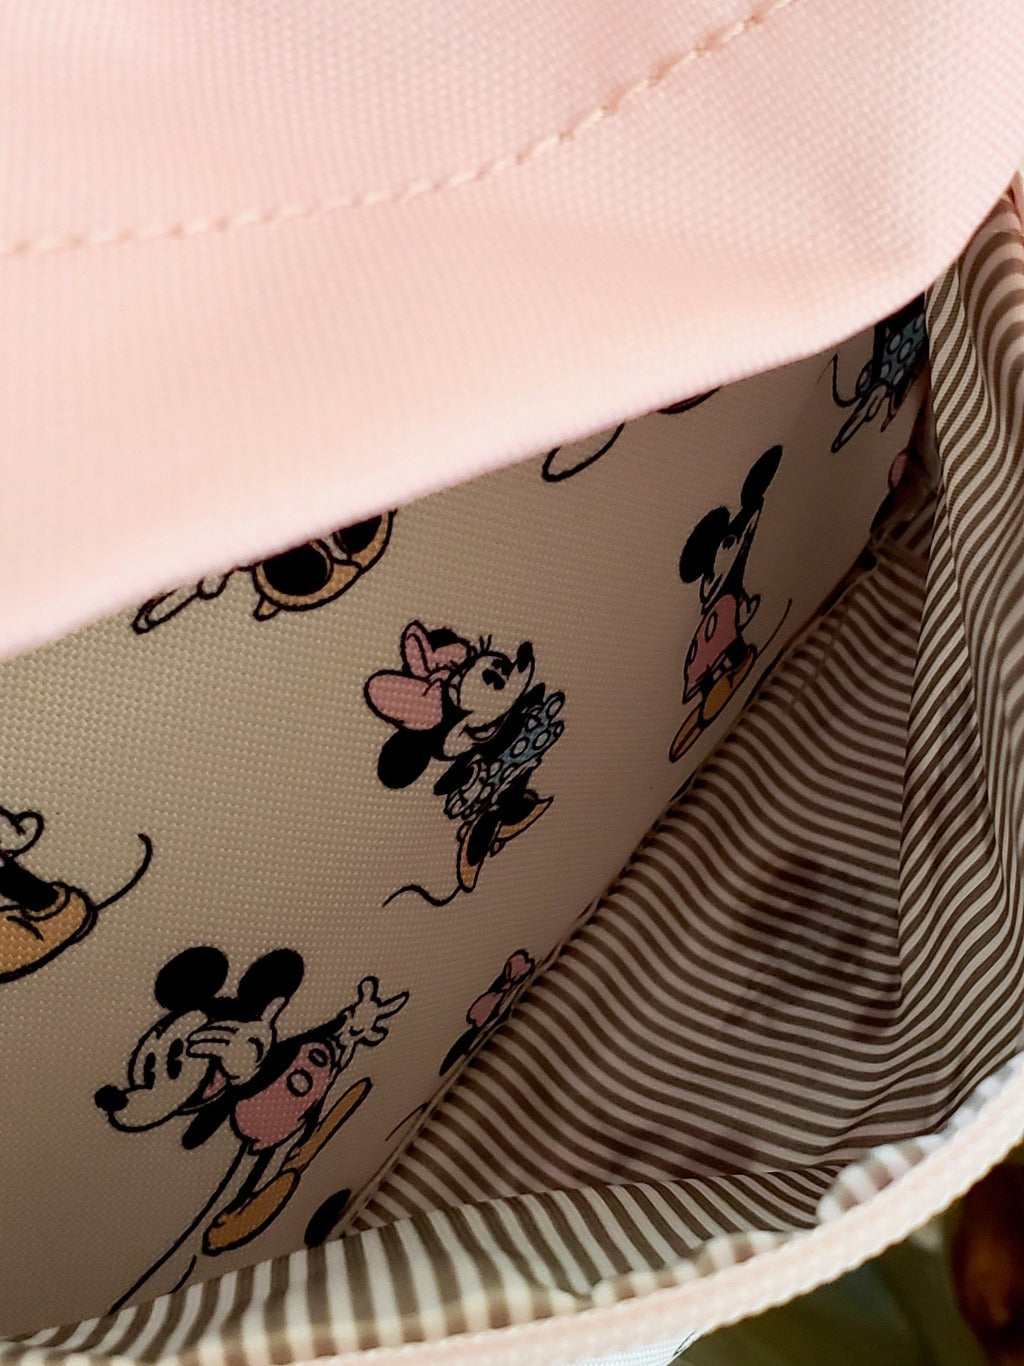 Loungefly Disney Minnie Mickey Backpack front zippered pocket open to show interior